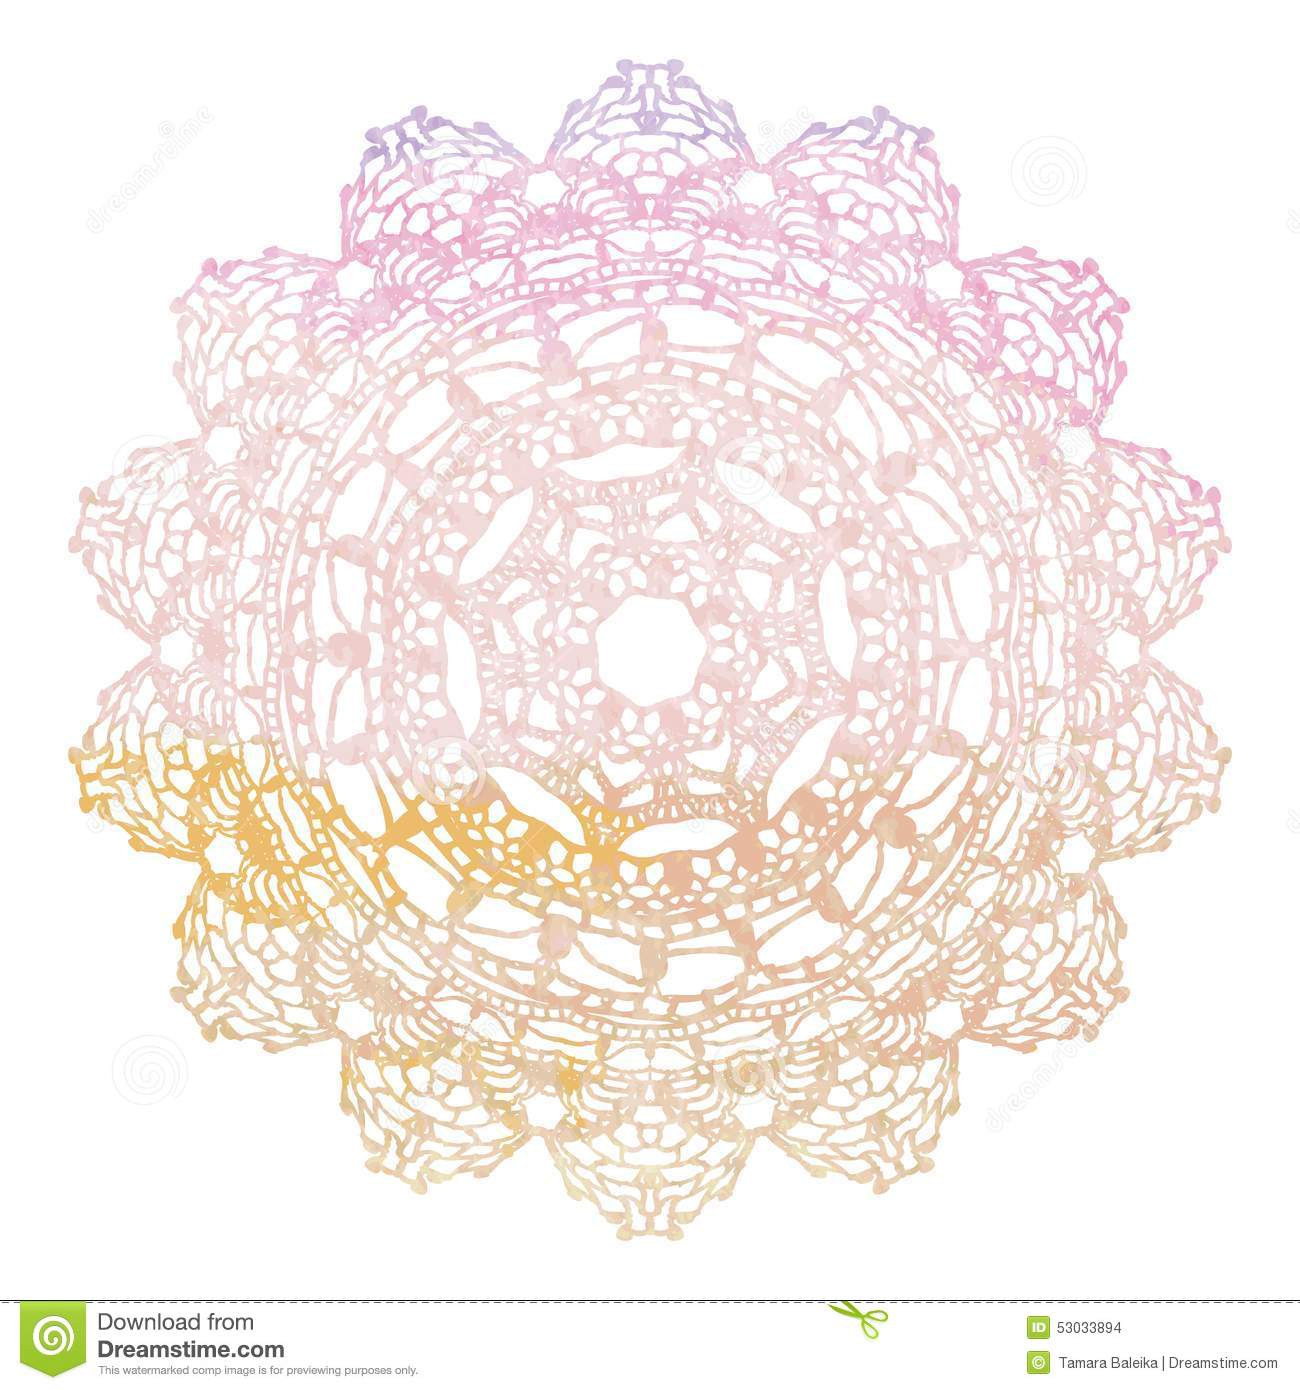 Crochet Wedding Invitations: Elegant Lacy Watercolor Doily. Crochet Mandala. Stock Vector